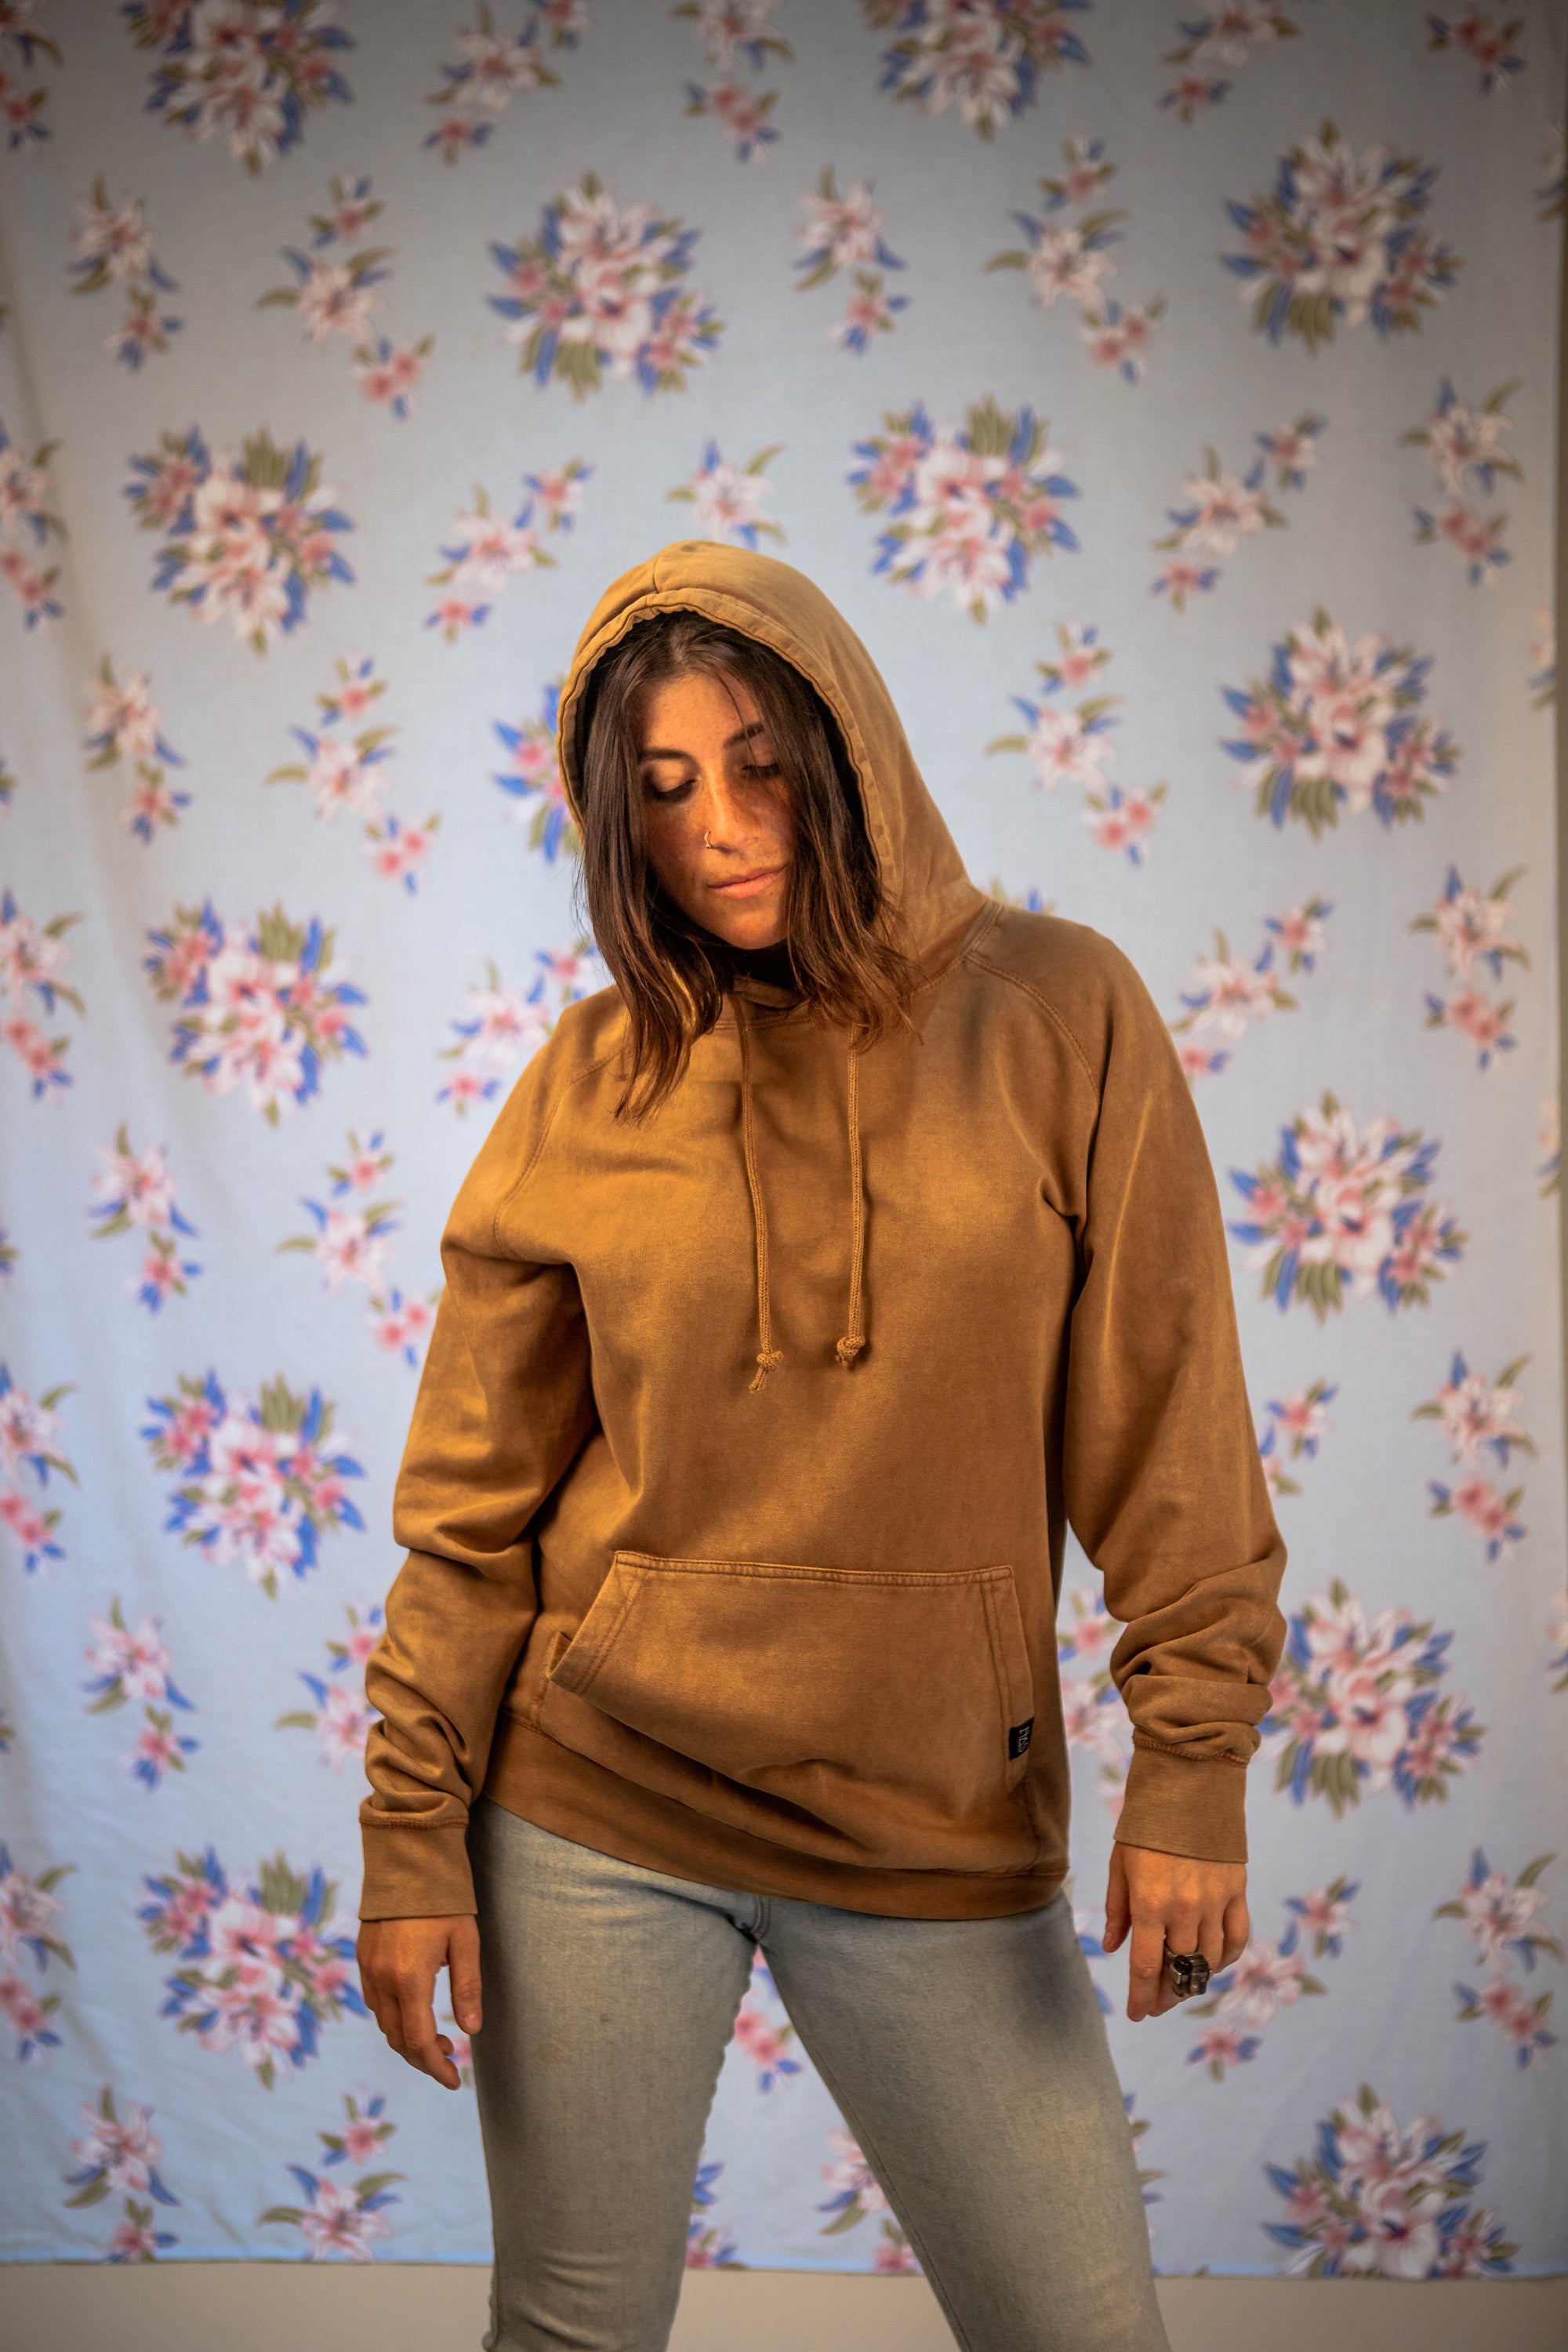 old-fashioned hoodie in vintage camel